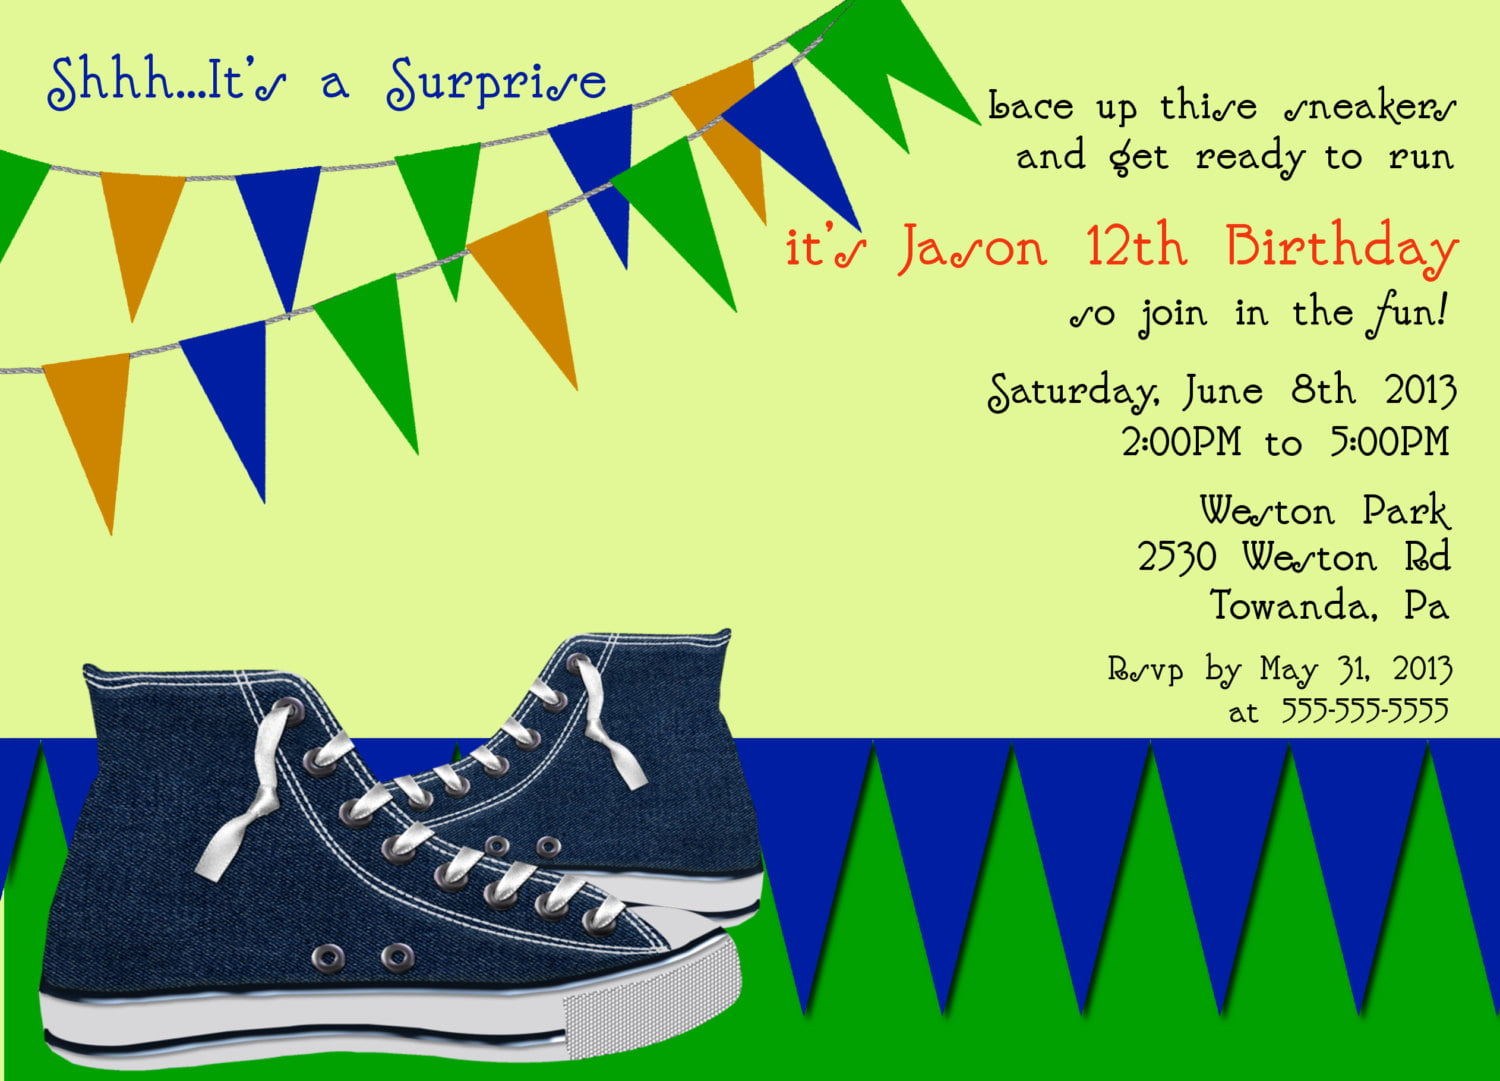 13th Birthday Party Invitation Ideas – Bagvania FREE Printable Invitation Template